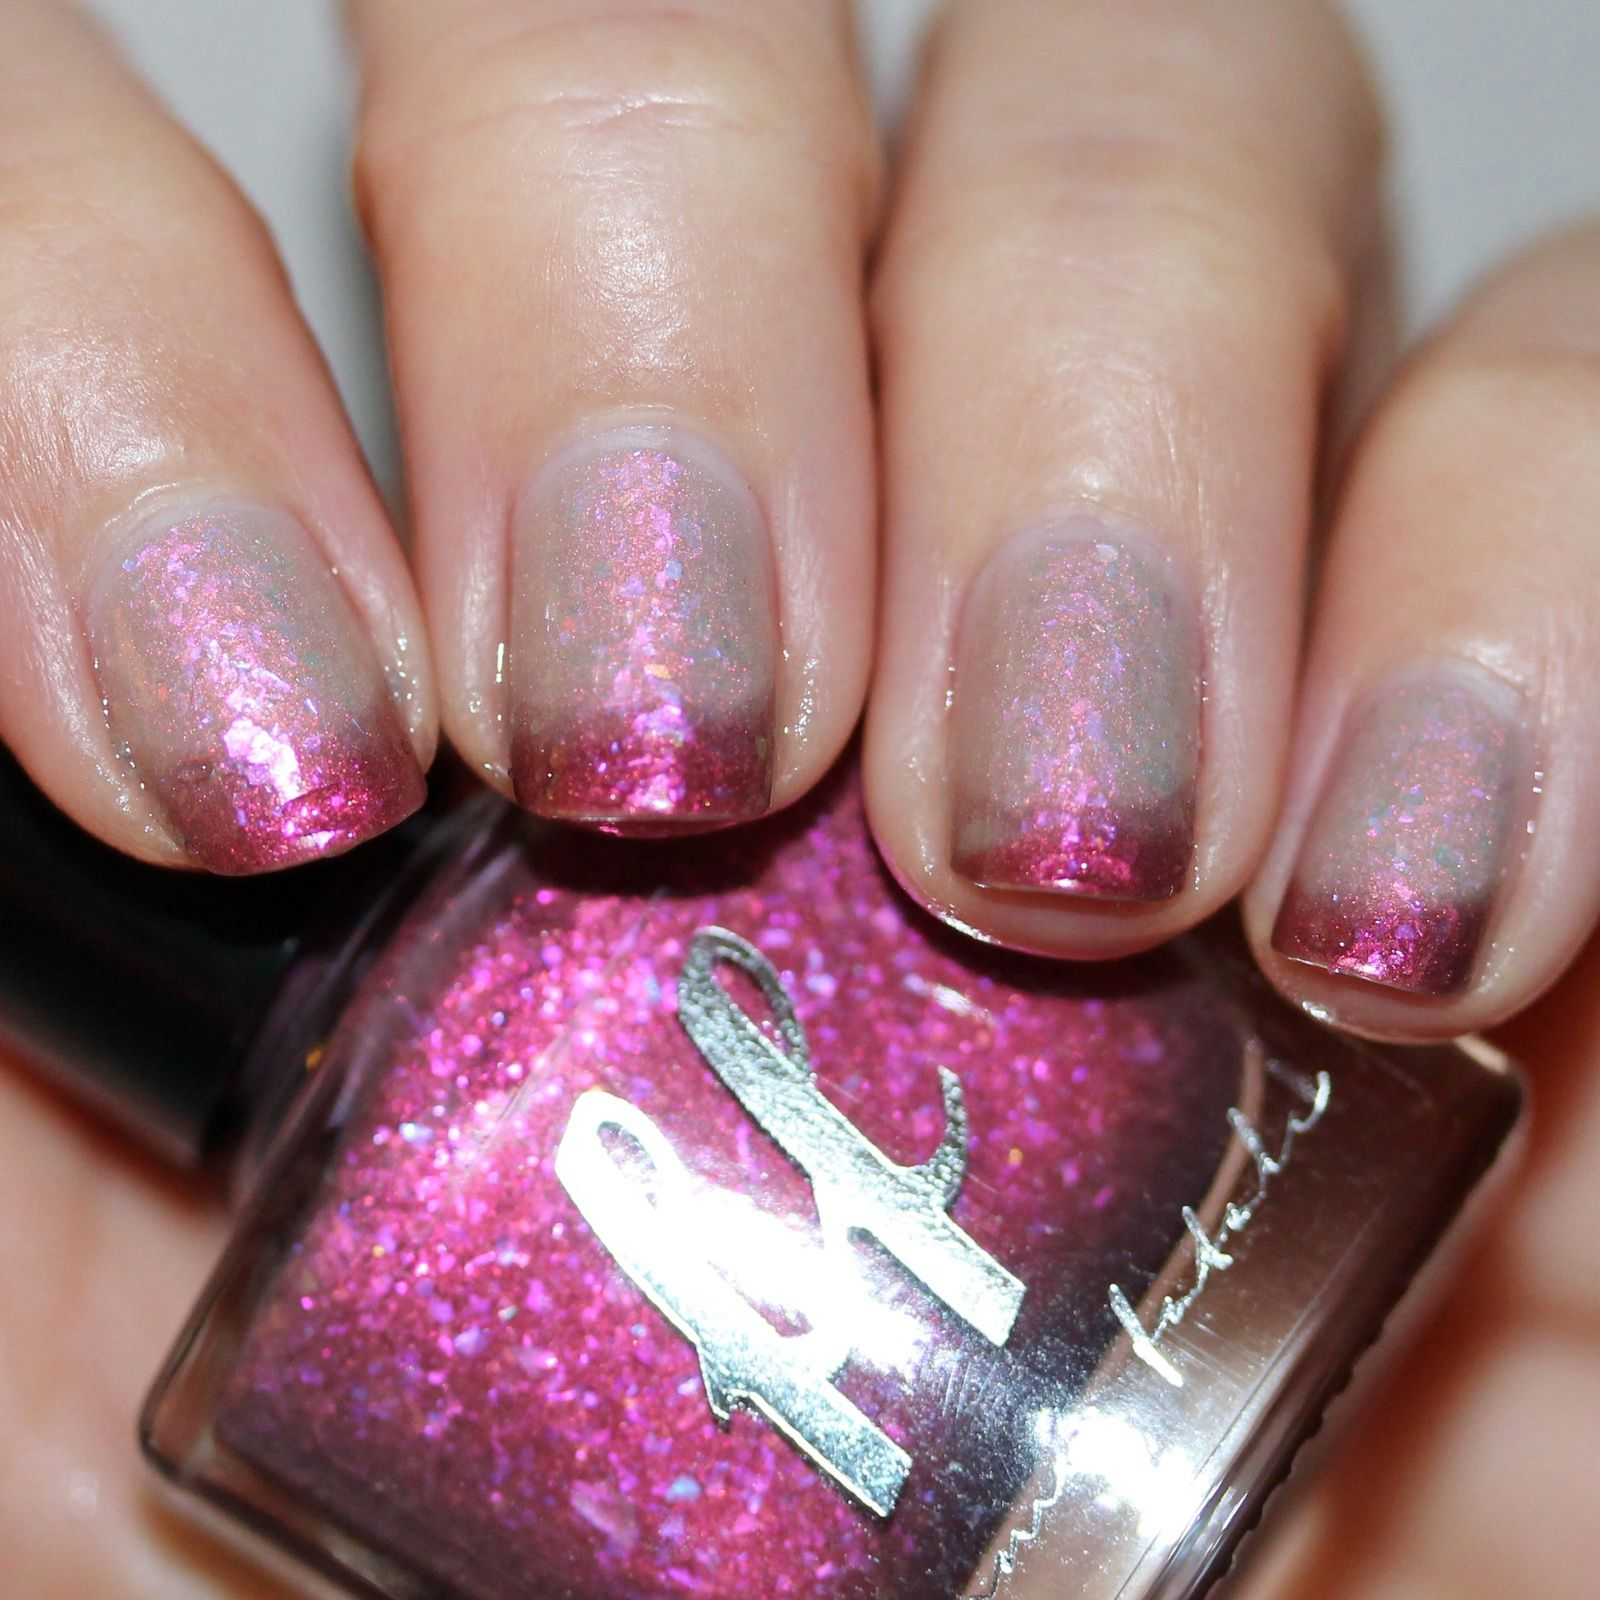 Femme Fatale Cosmetics Inner Dreaming (3 coats, no top coat)